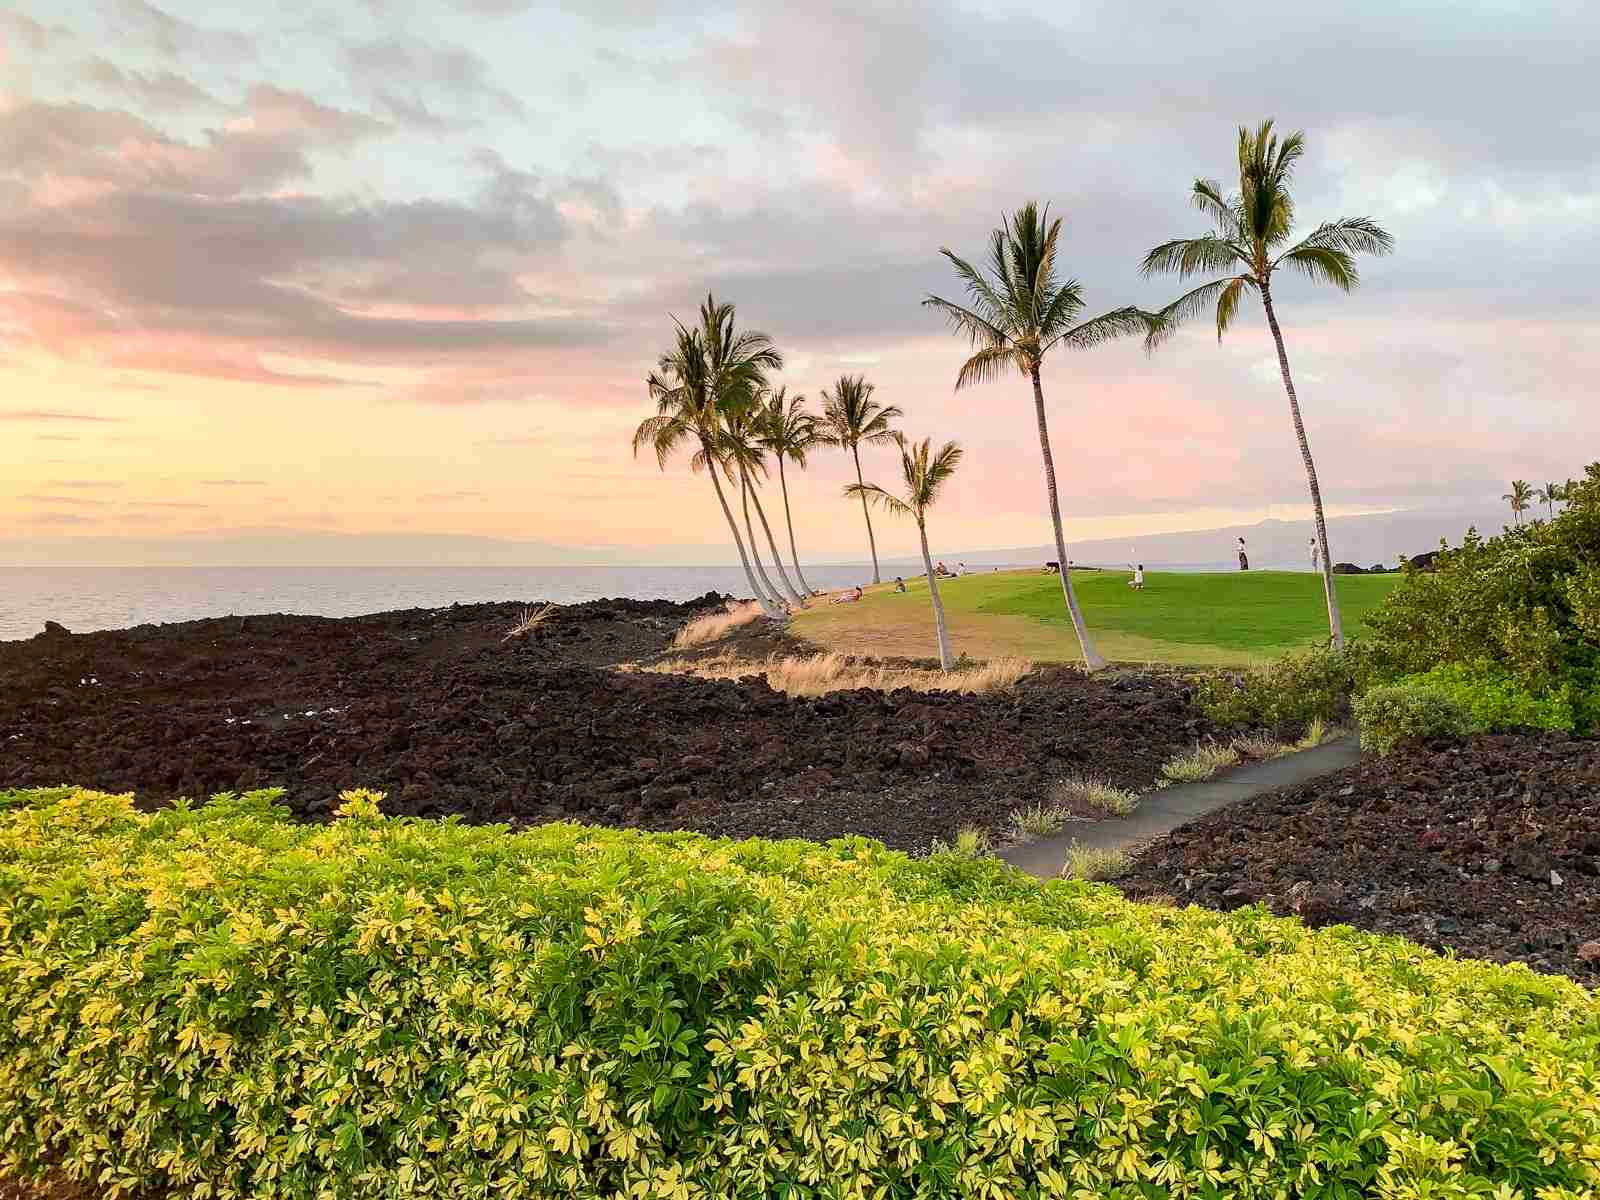 Hilton Waikoloa Village (Photo by Summer Hull / The Points Guy)